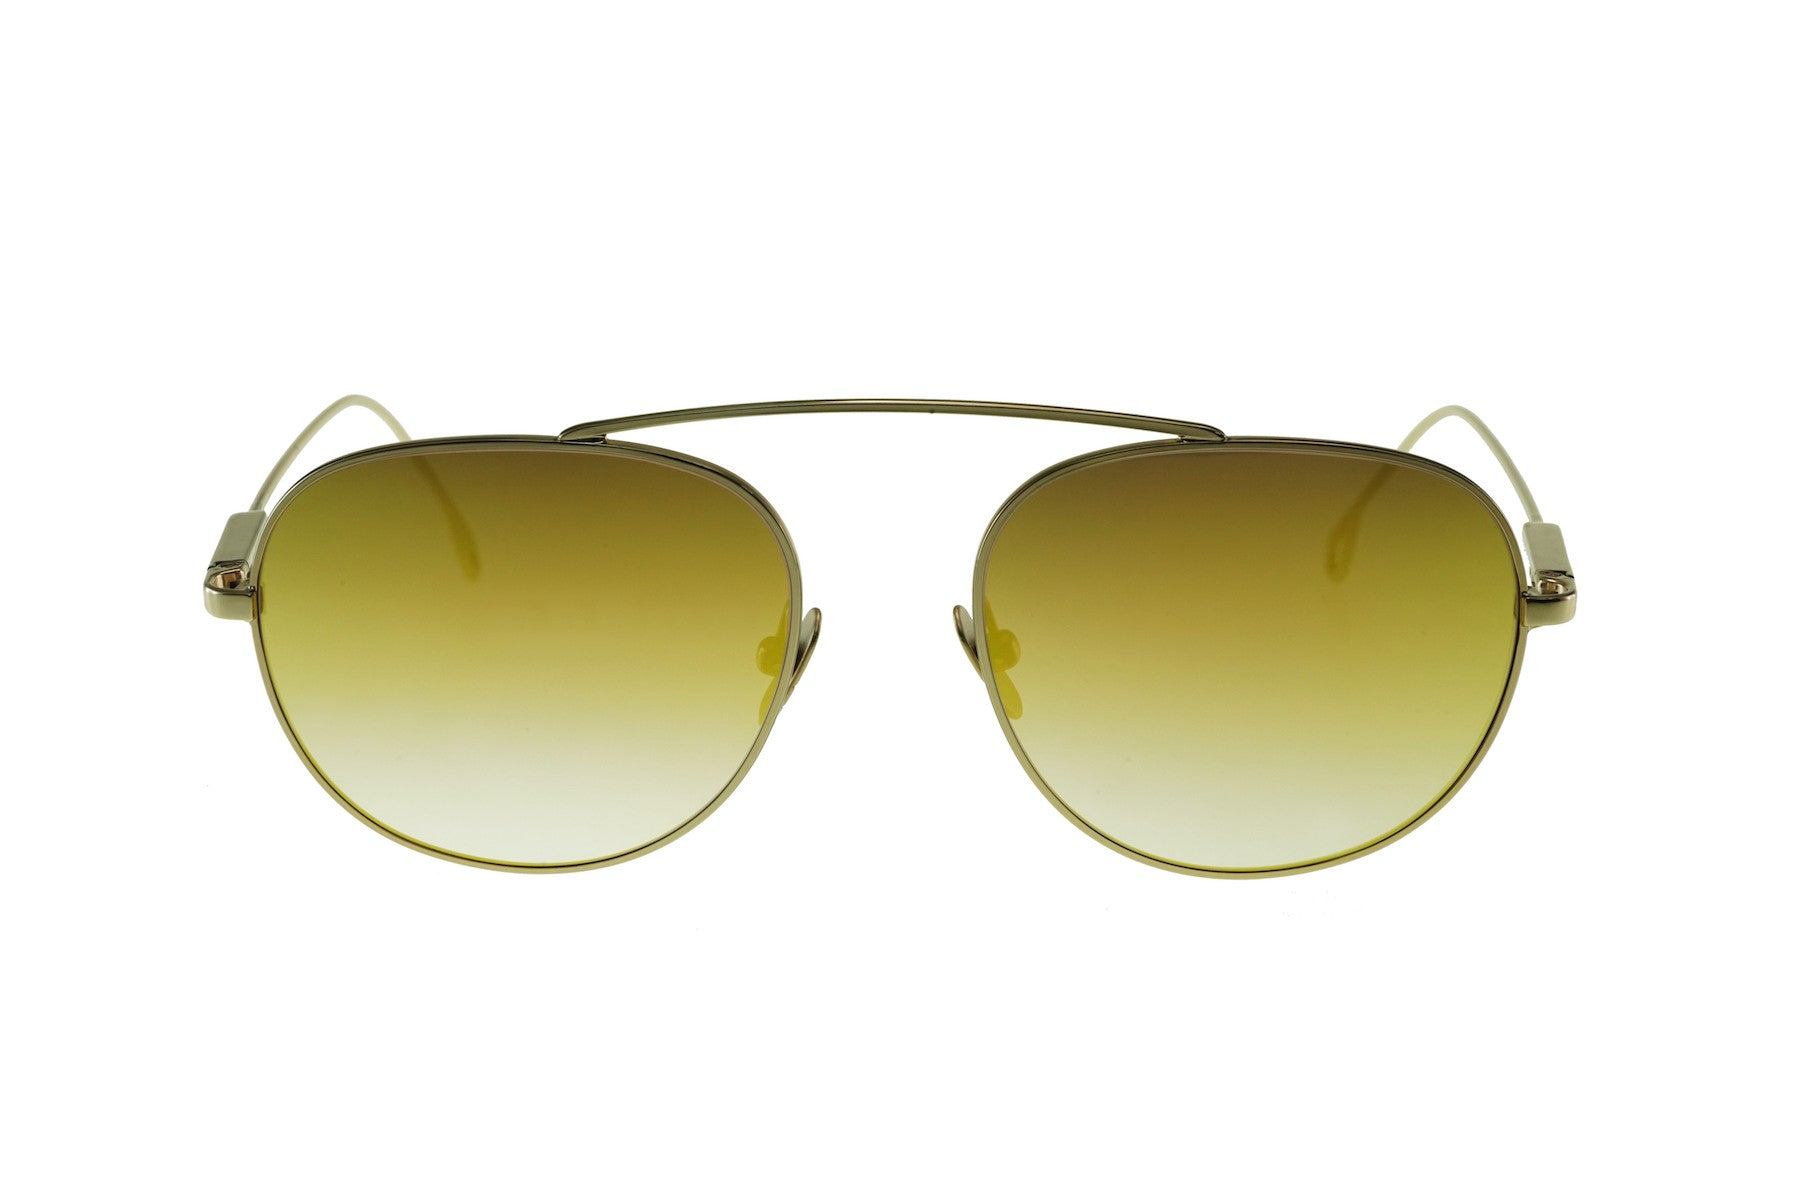 Ocean 222 - Peppertint - Designer sunglasses